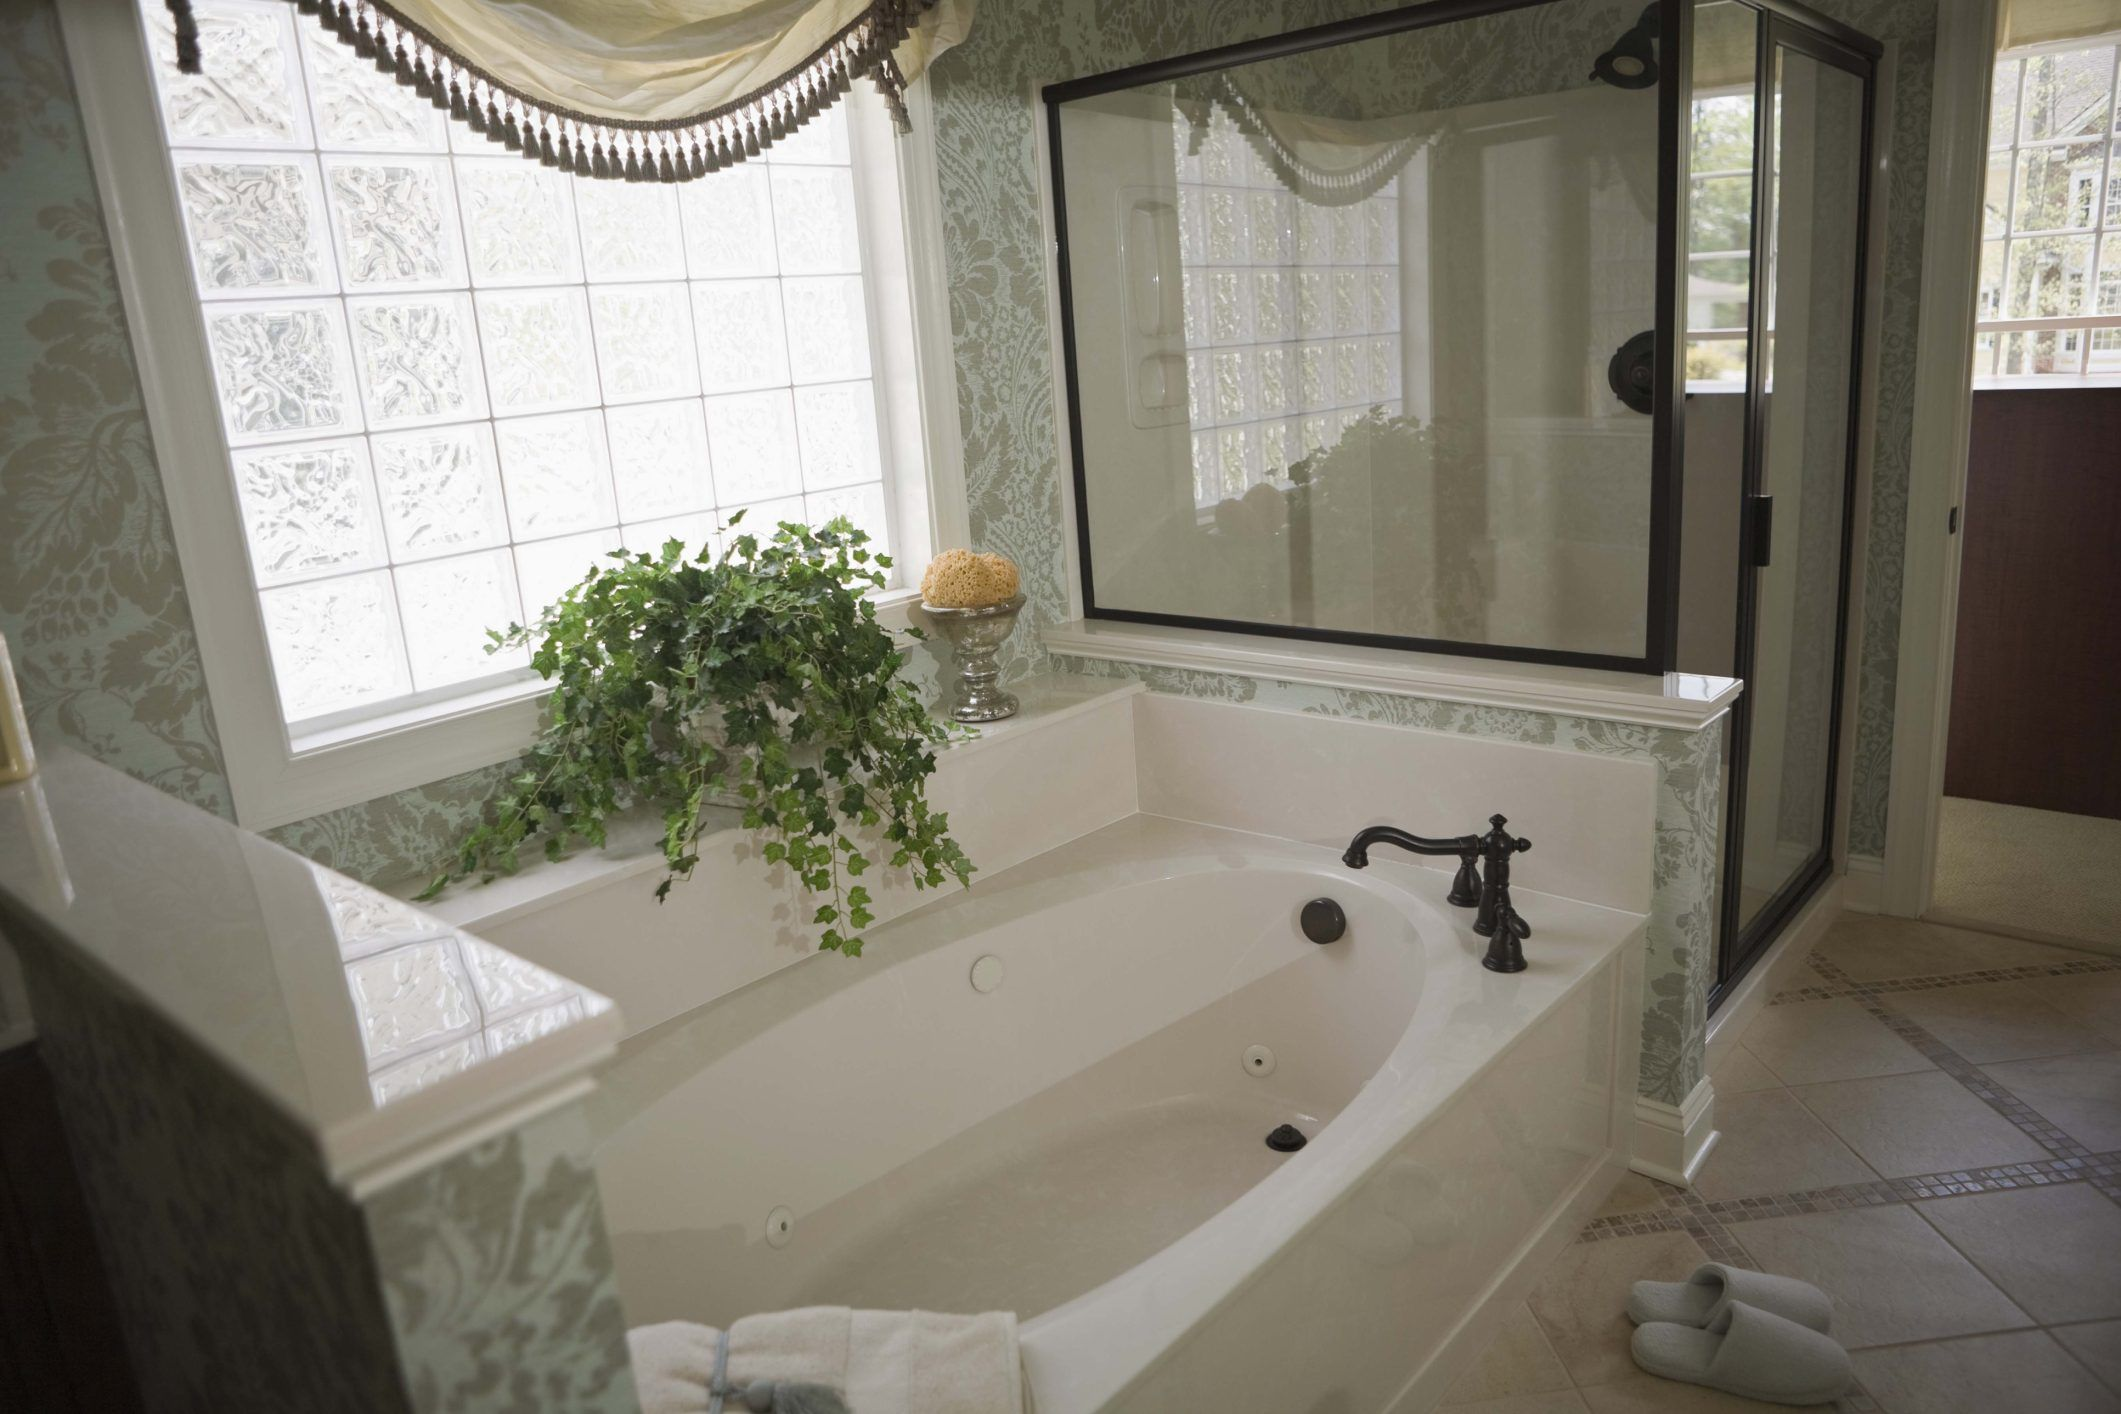 How To Remove Hardwater Stains From Fiberglass Tubs Fiberglass